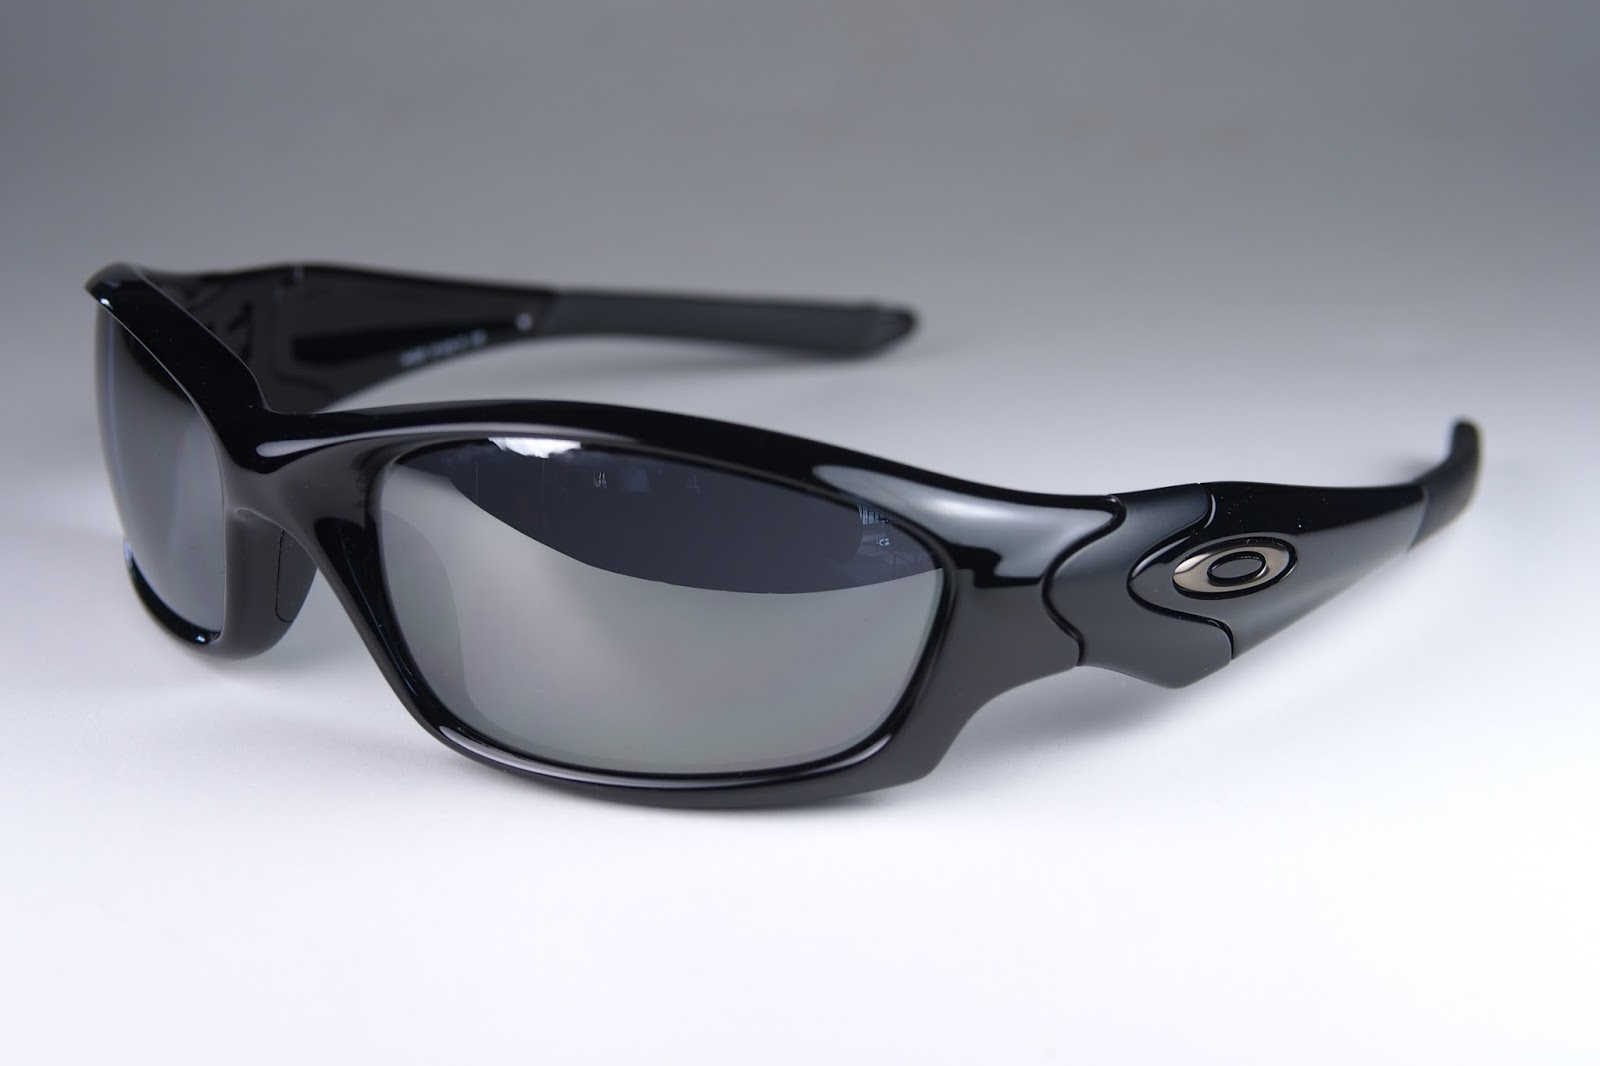 91c2cf481 Oakley Straight Jacket Polished Black Black Iridium Polarized ...